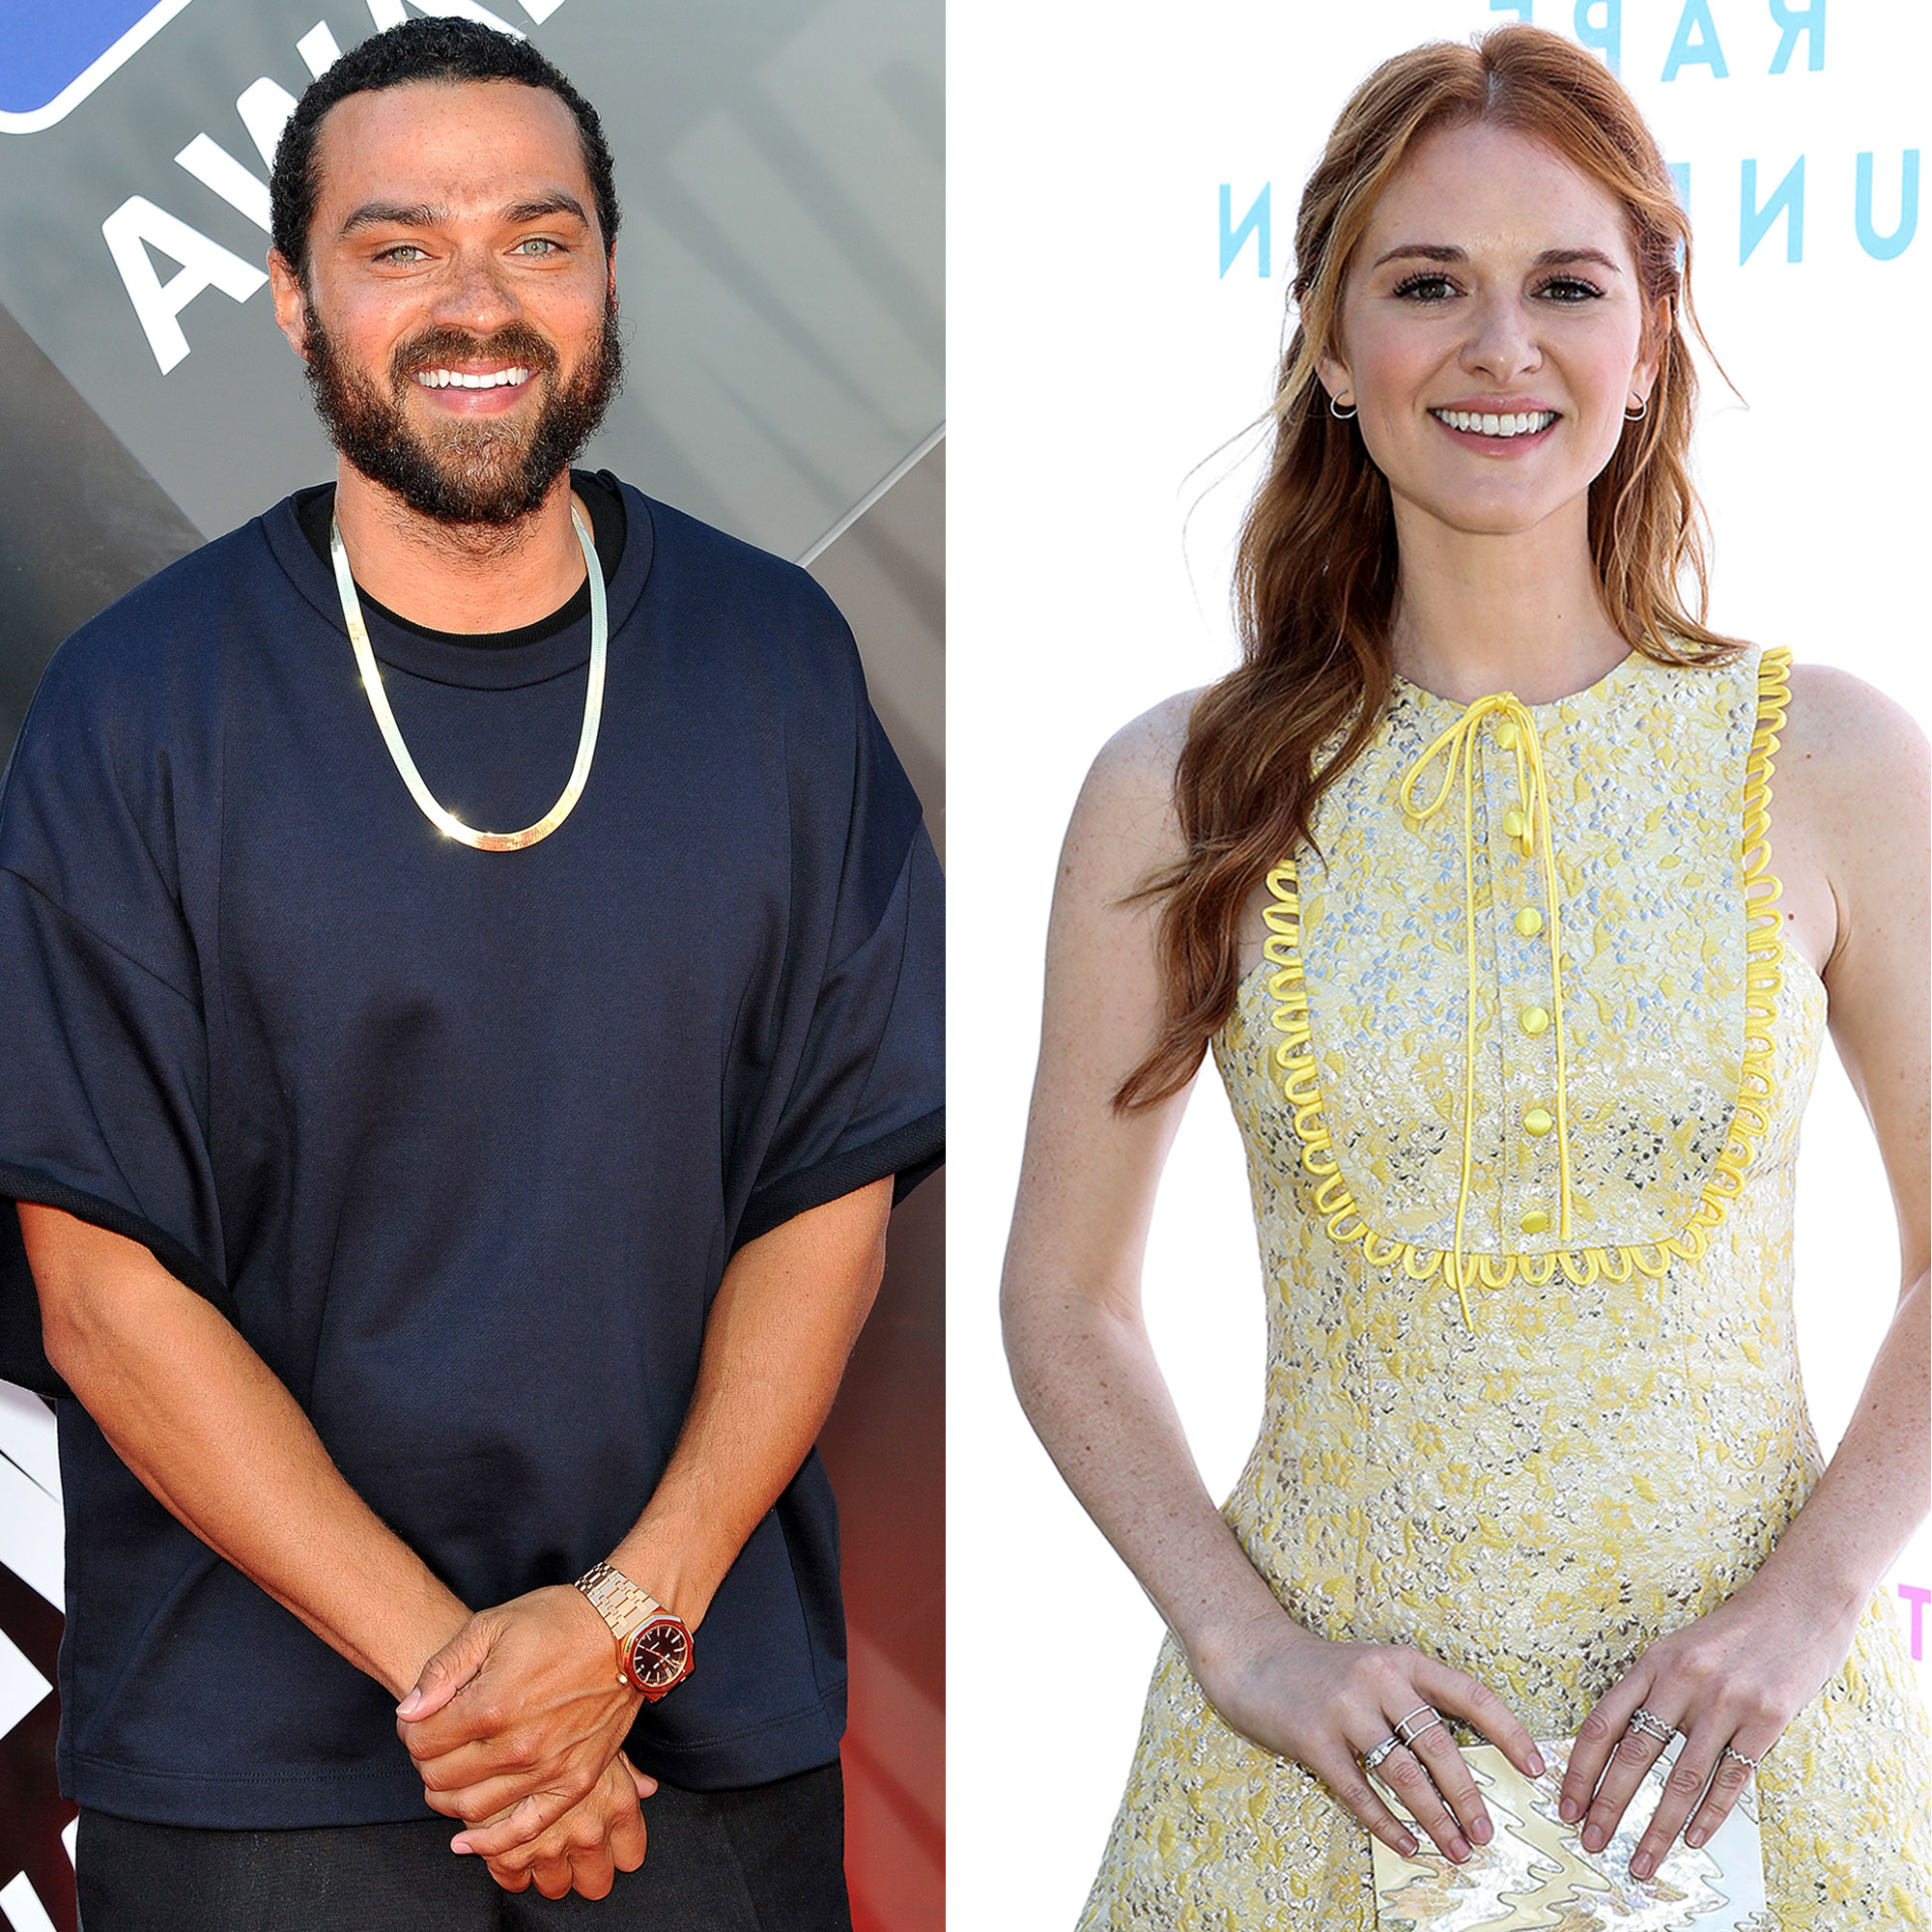 Jesse Williams - Jesse Williams at The 2018 NBA Awards Show in Santa Monica, California on June 25, 2018; Sarah Drew The Rape Foundation's Annual Brunch in Beverly Hills, California October 7, 2018.